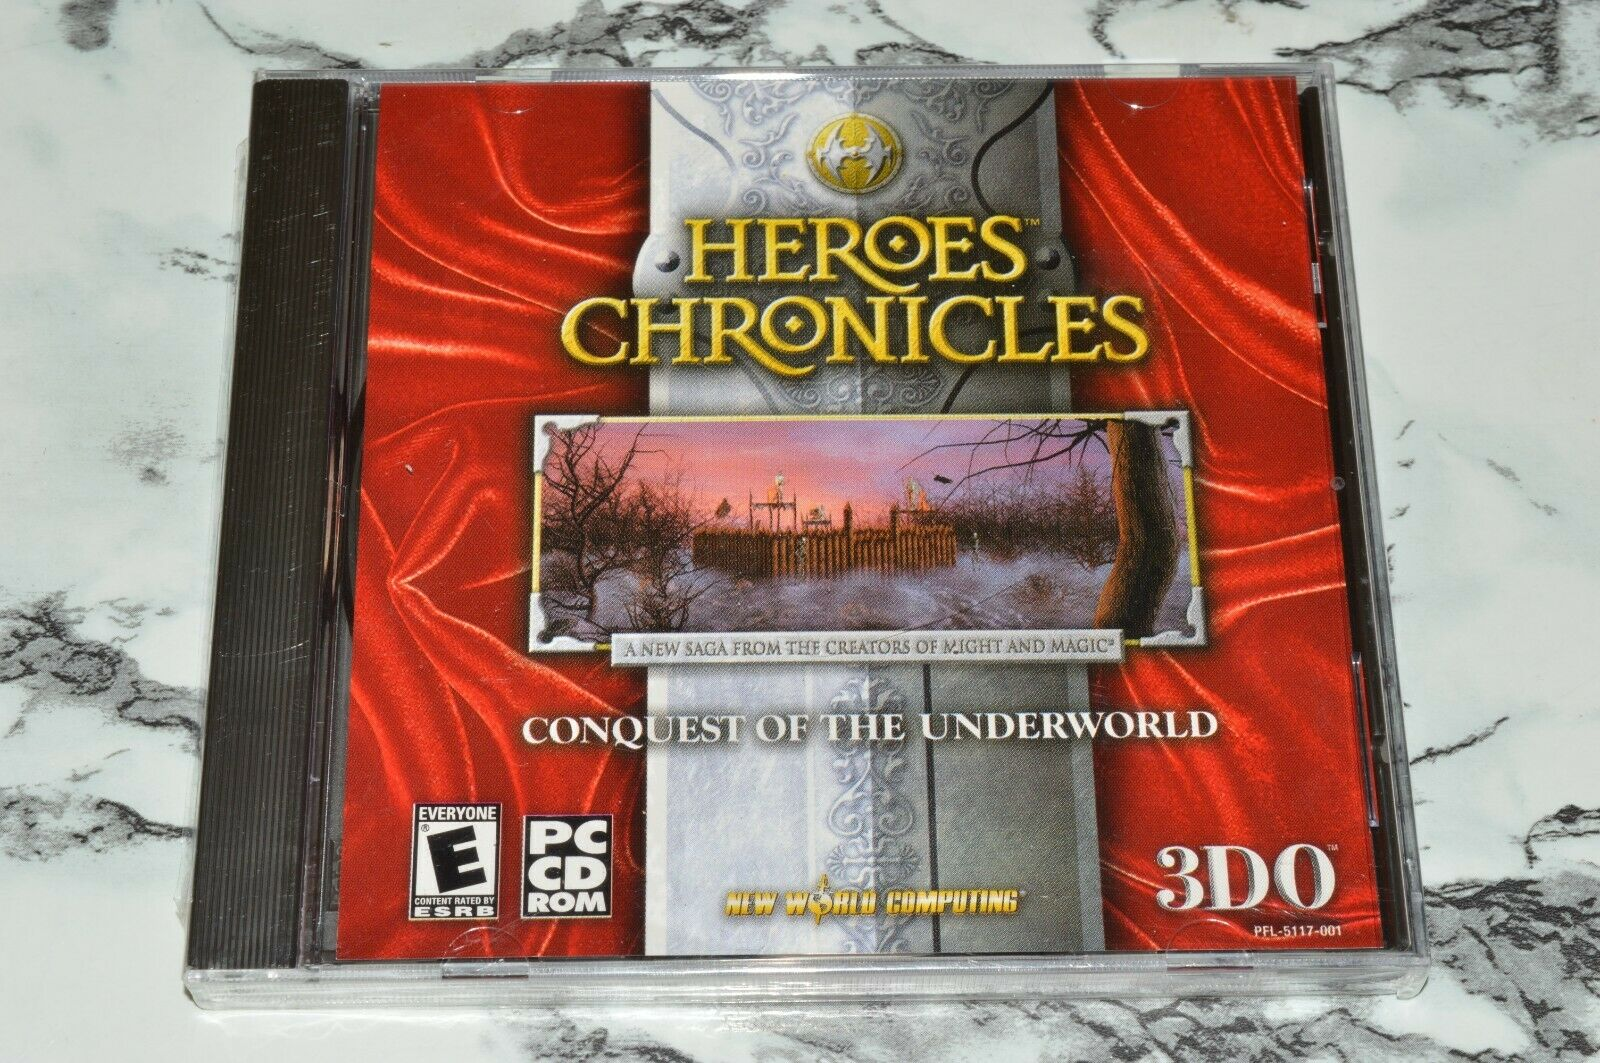 NEW - Heroes Chronicles - Conquest Of The Underworld PC CD-ROM, 2000  - $11.18